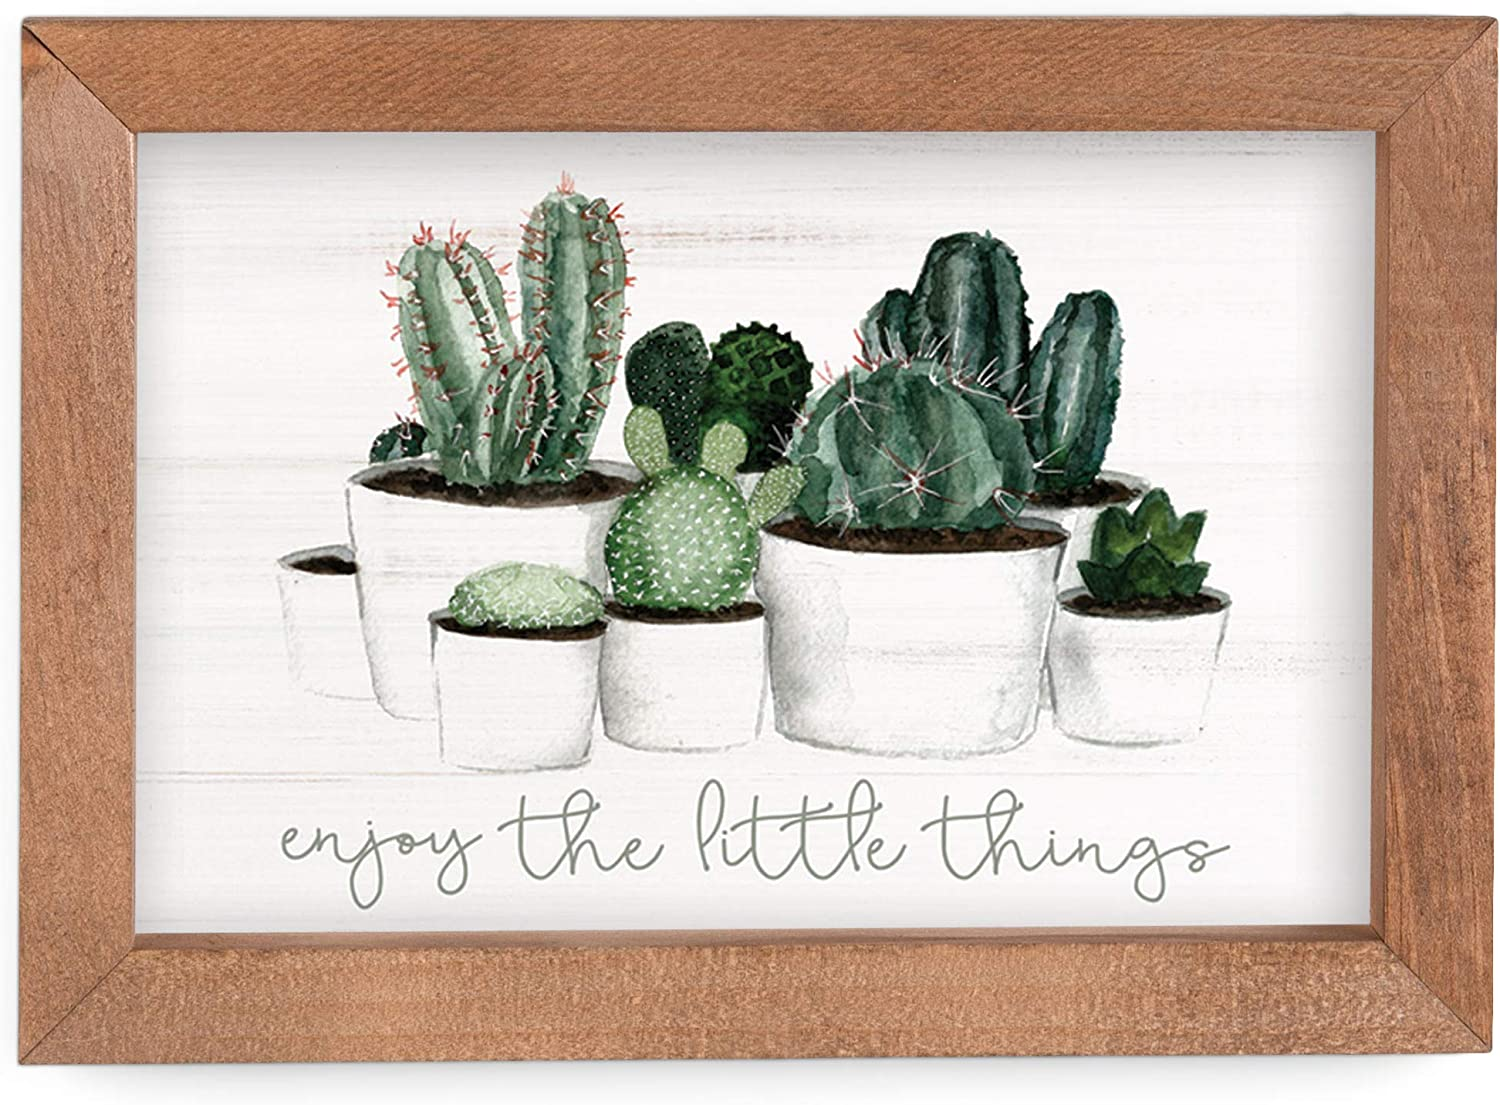 P. Graham Dunn Enjoy The Little Things Cactus Plants 10 x 7 Inch Pine Wood Framed Wall Art Plaque